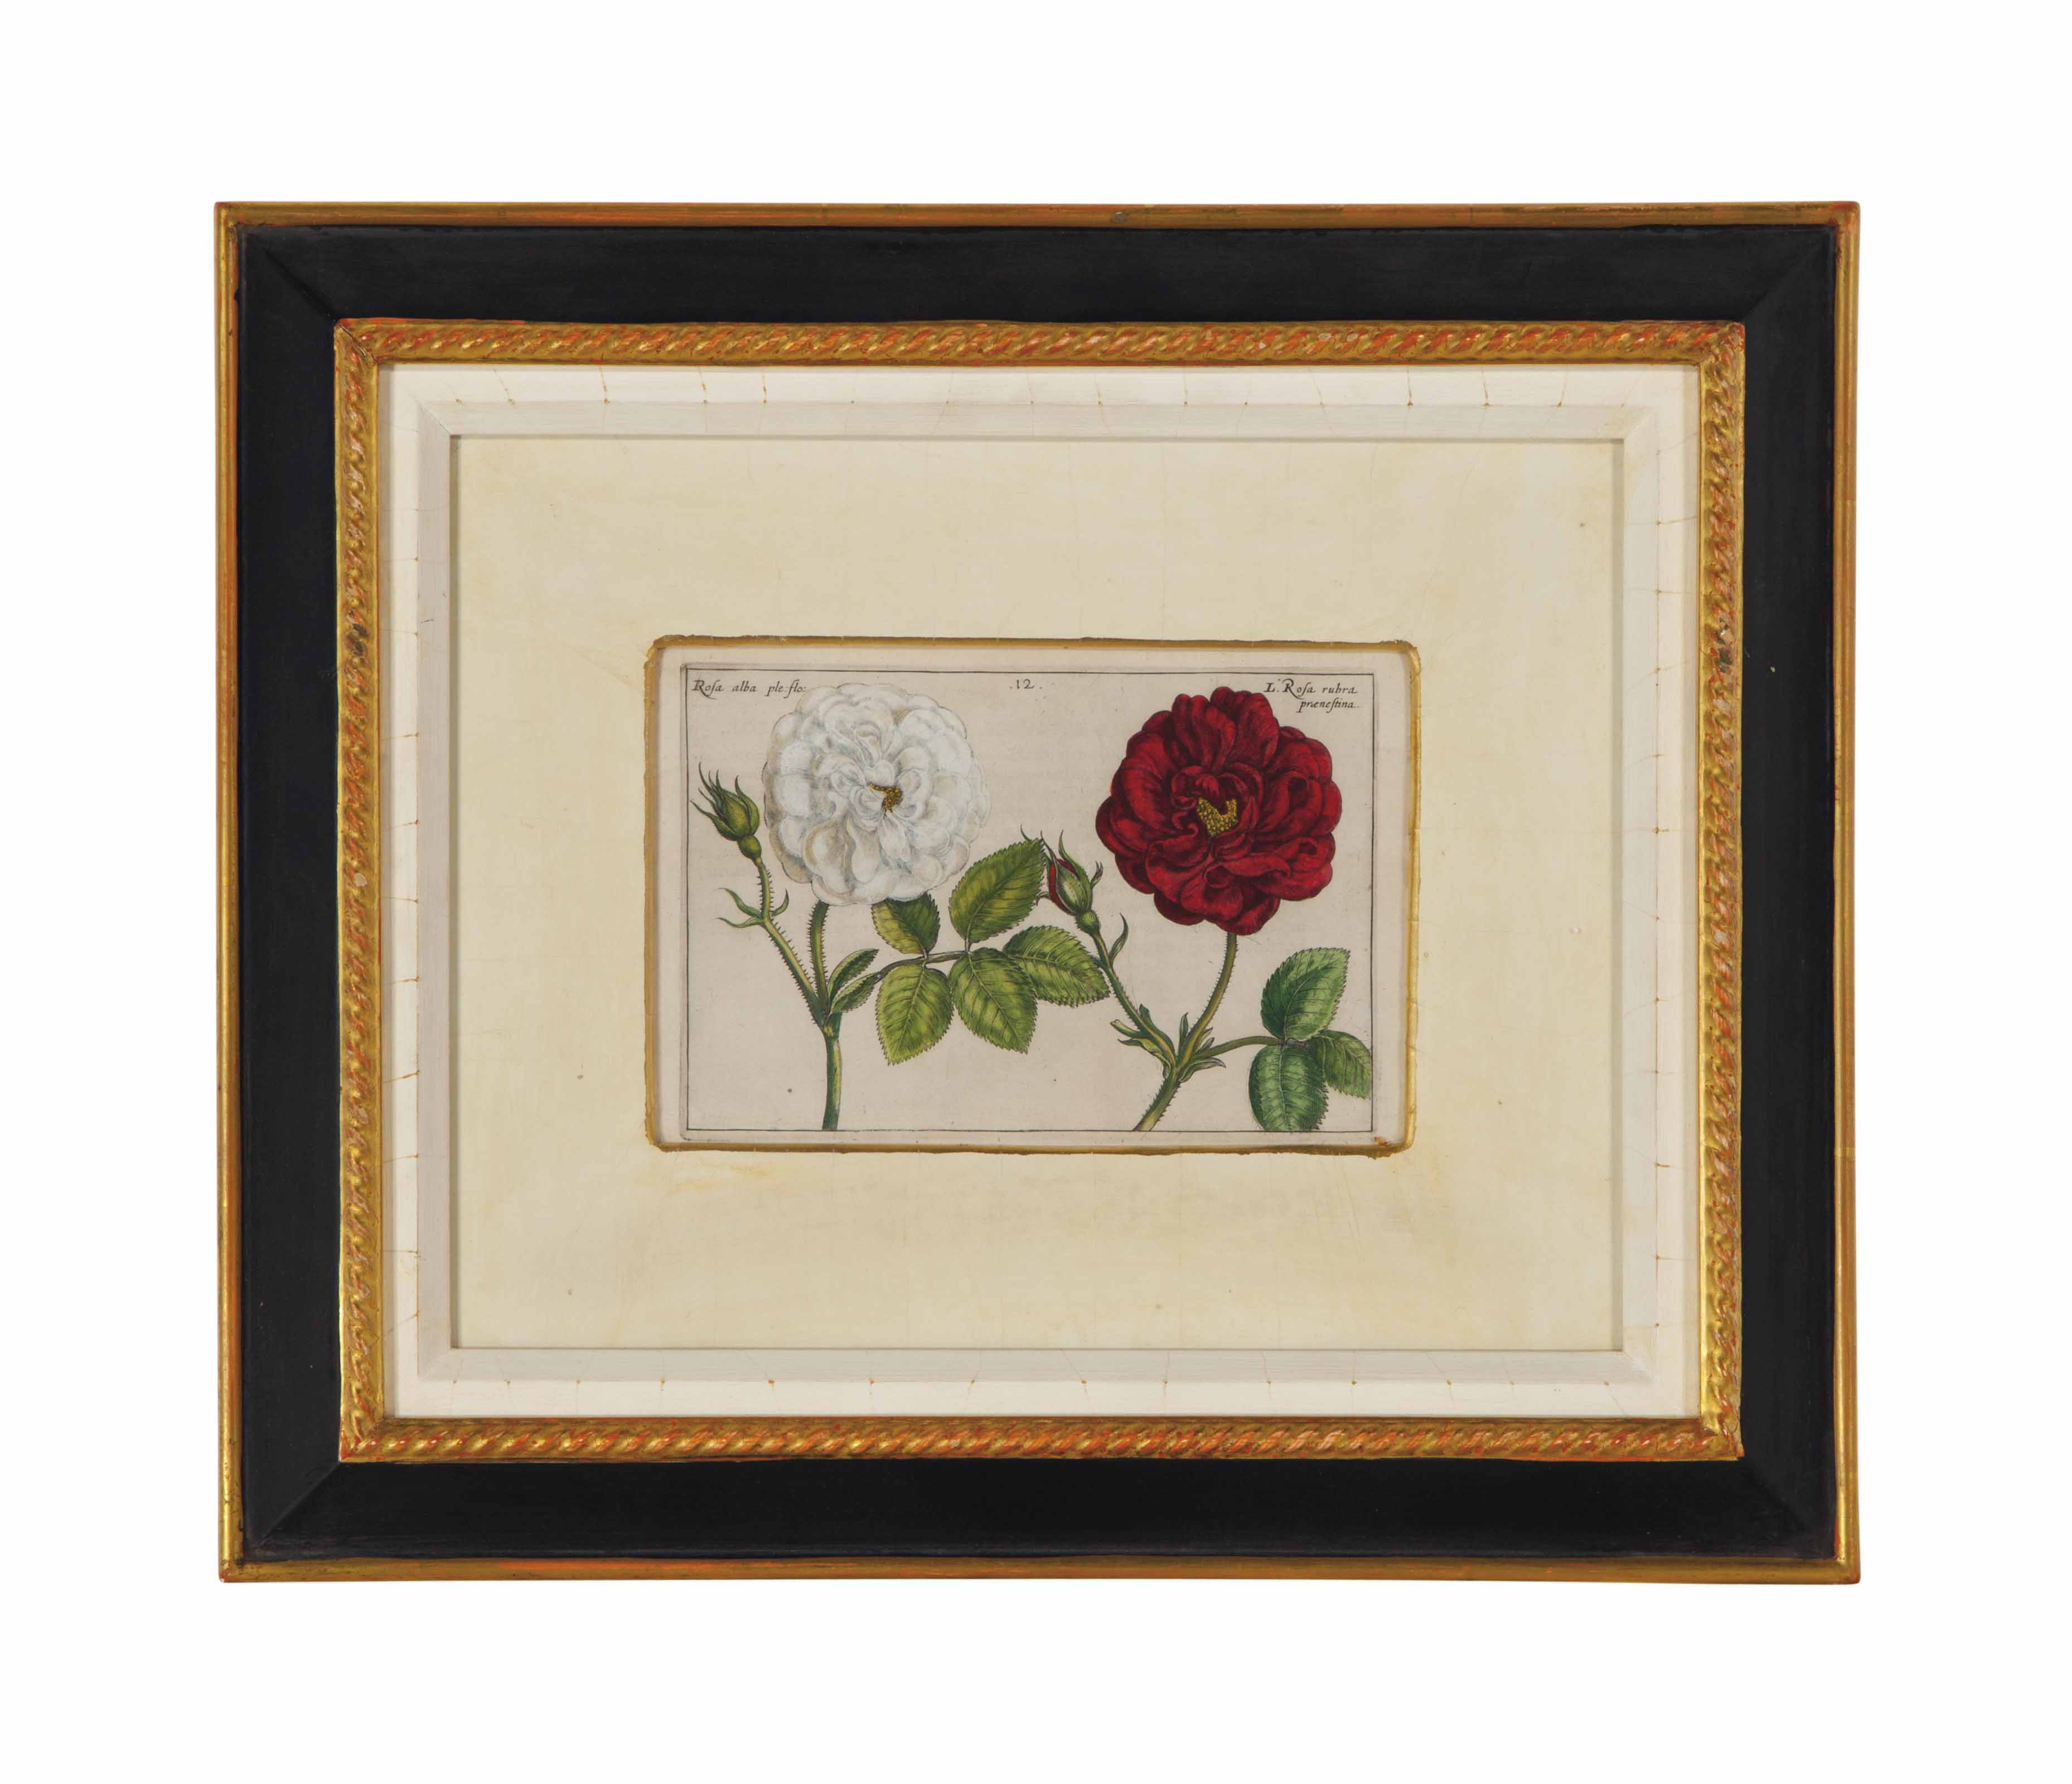 FOUR ETCHINGS WITH HAND COLORING FROM HORTUS FLORIDUS,